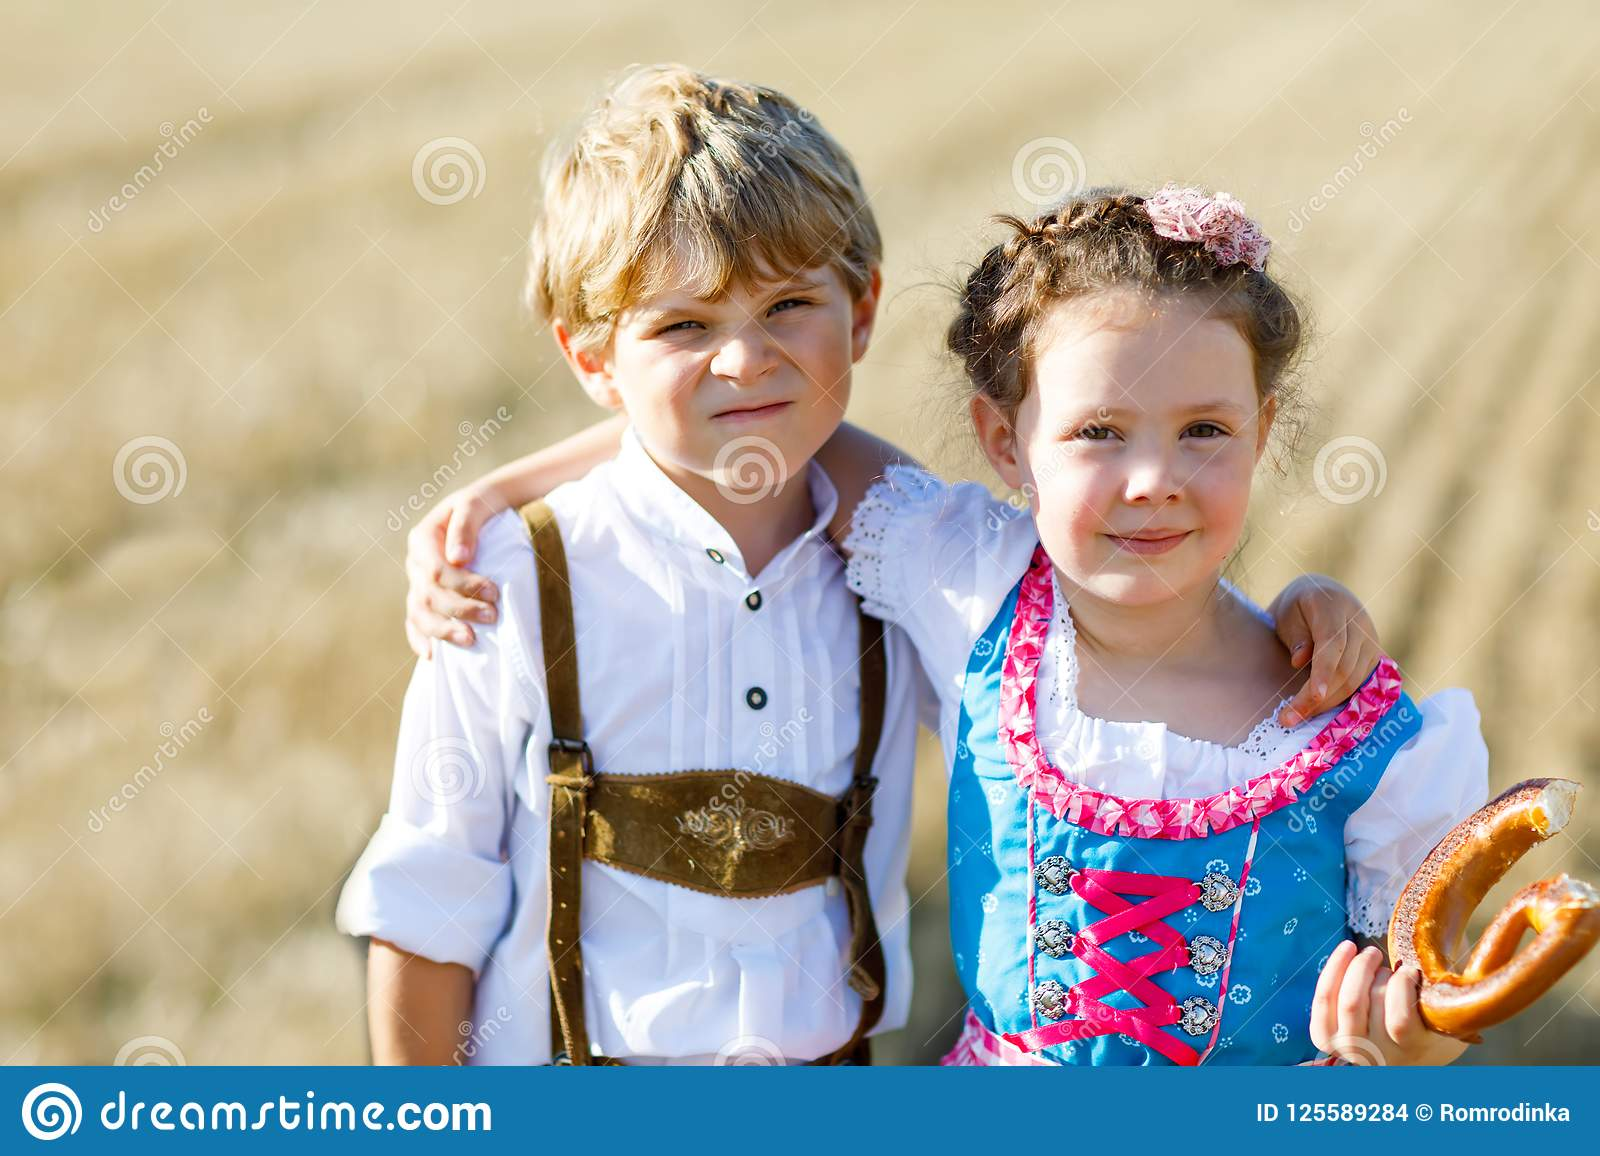 Two kids in traditional Bavarian costumes in wheat field. German children eating bread and pretzel during Oktoberfest